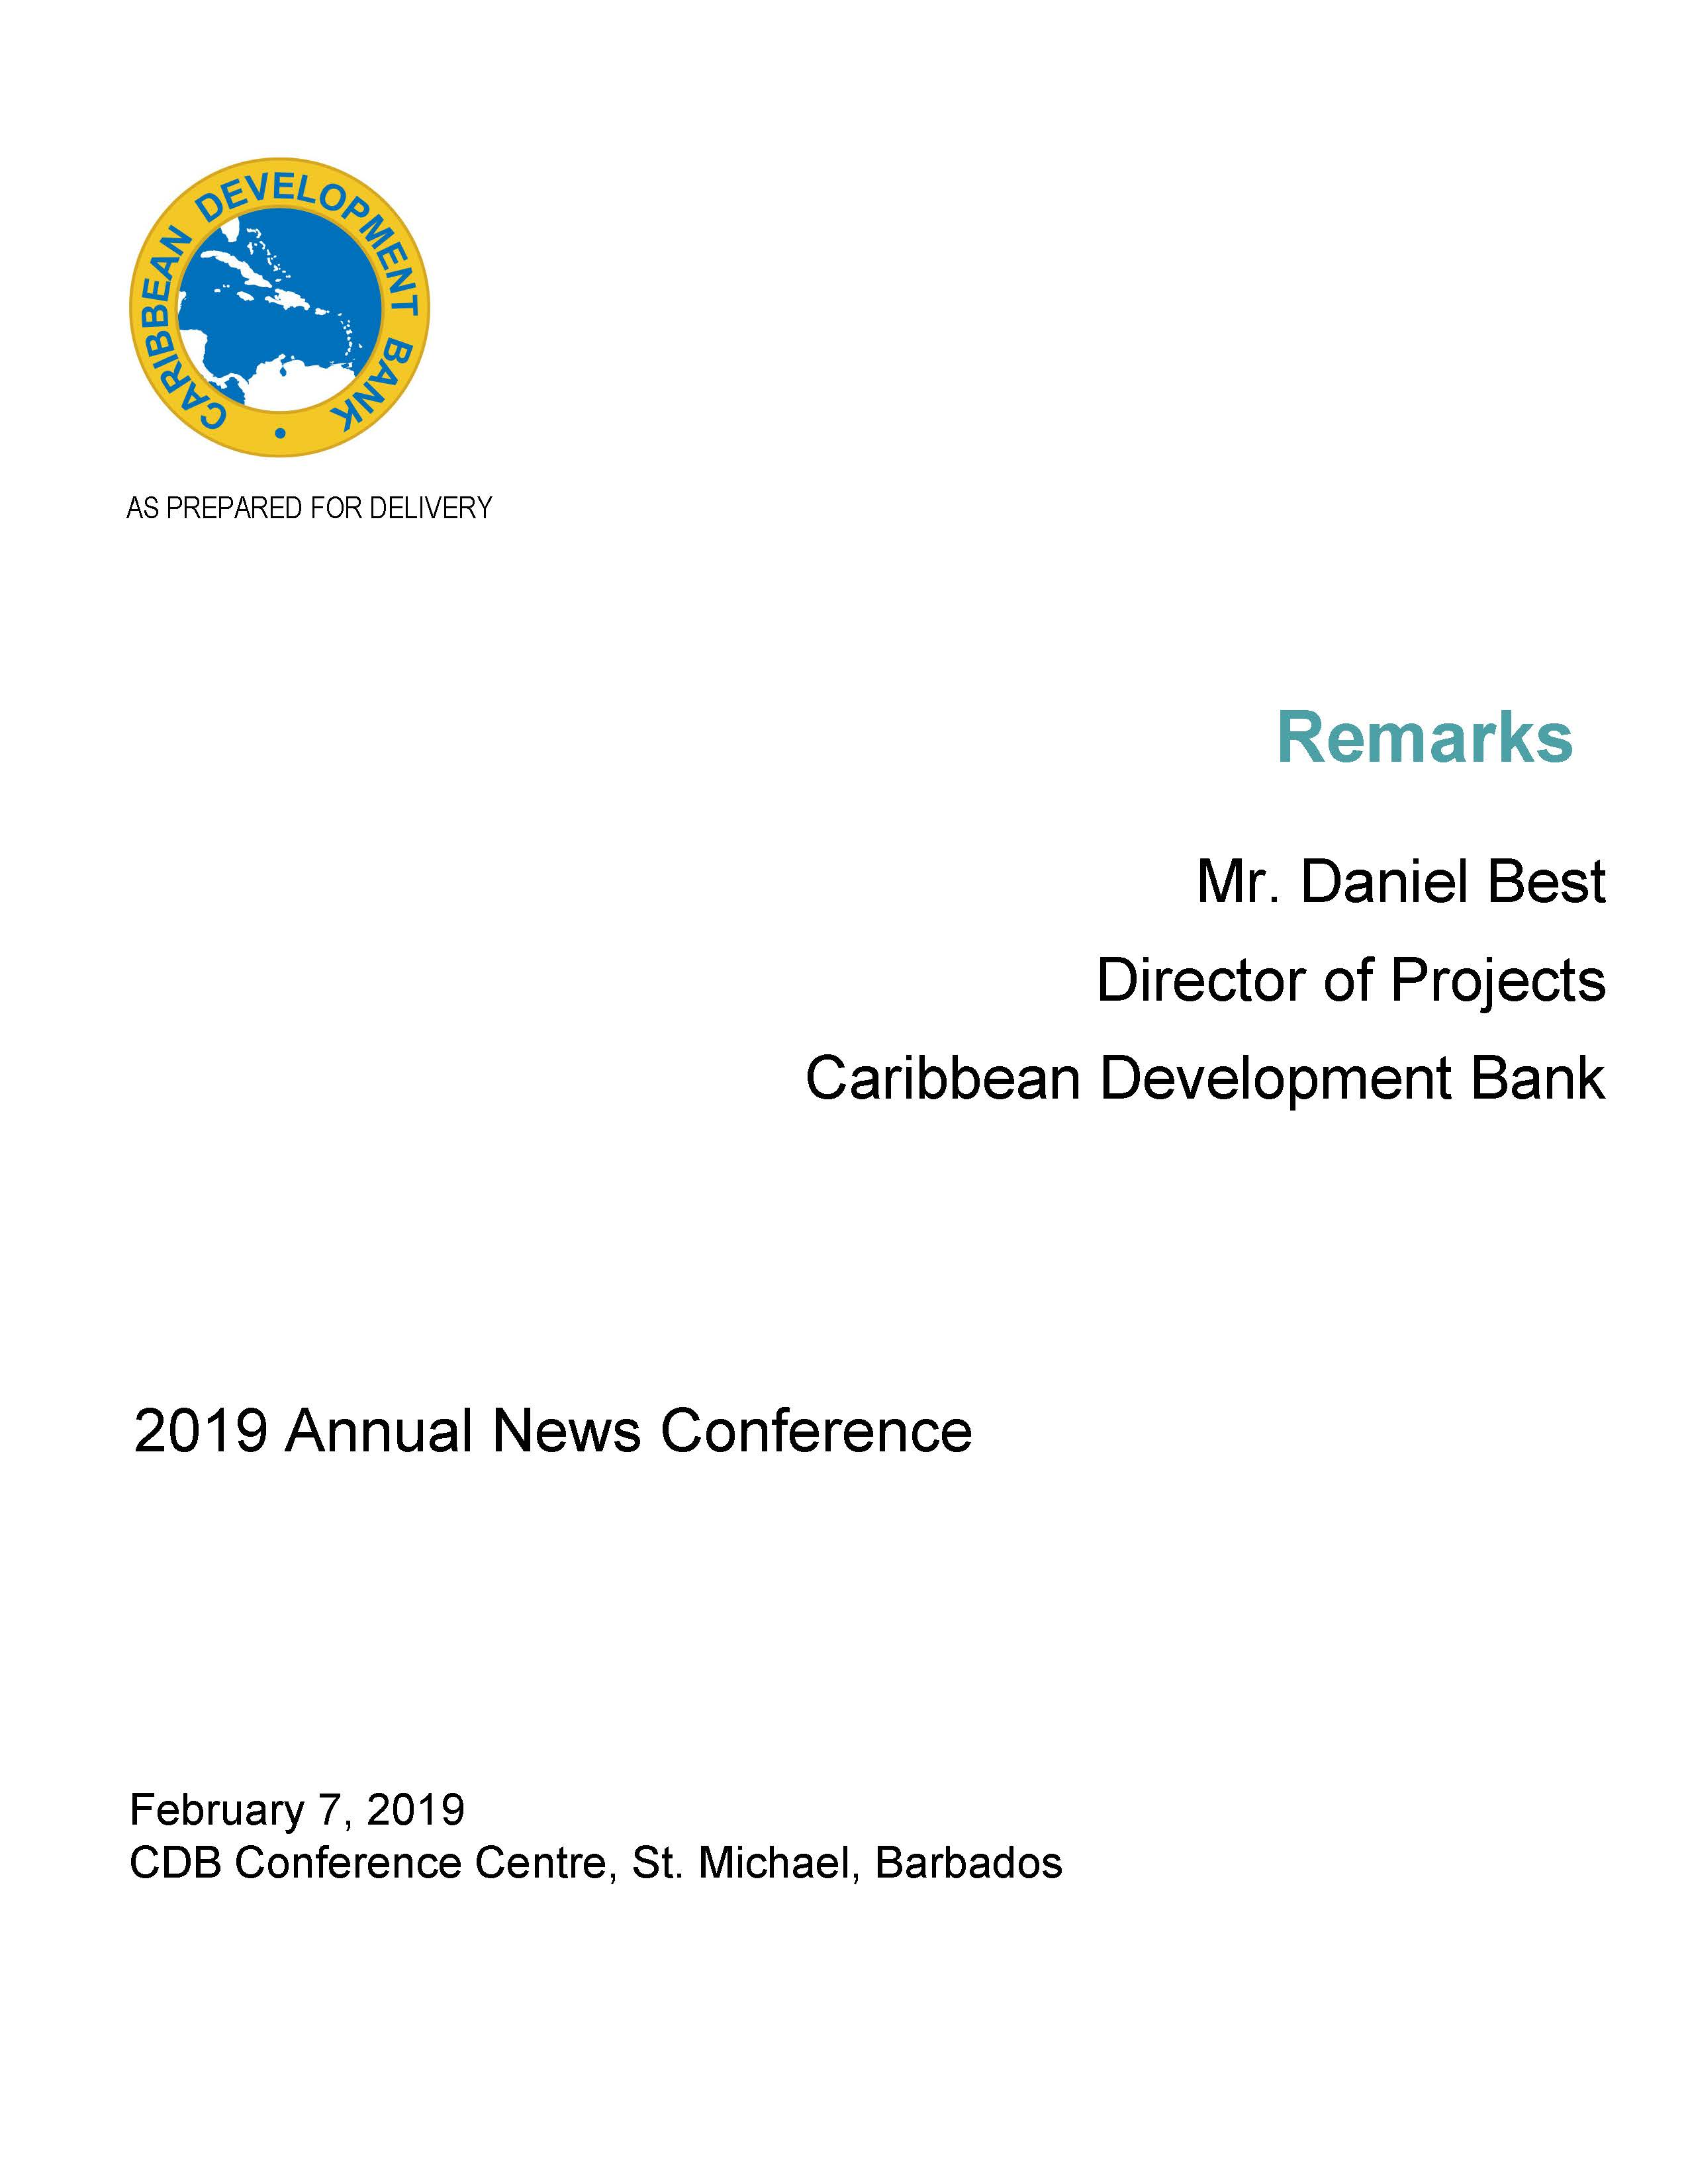 text-based cover for speech delivered by Mr. Daniel Best